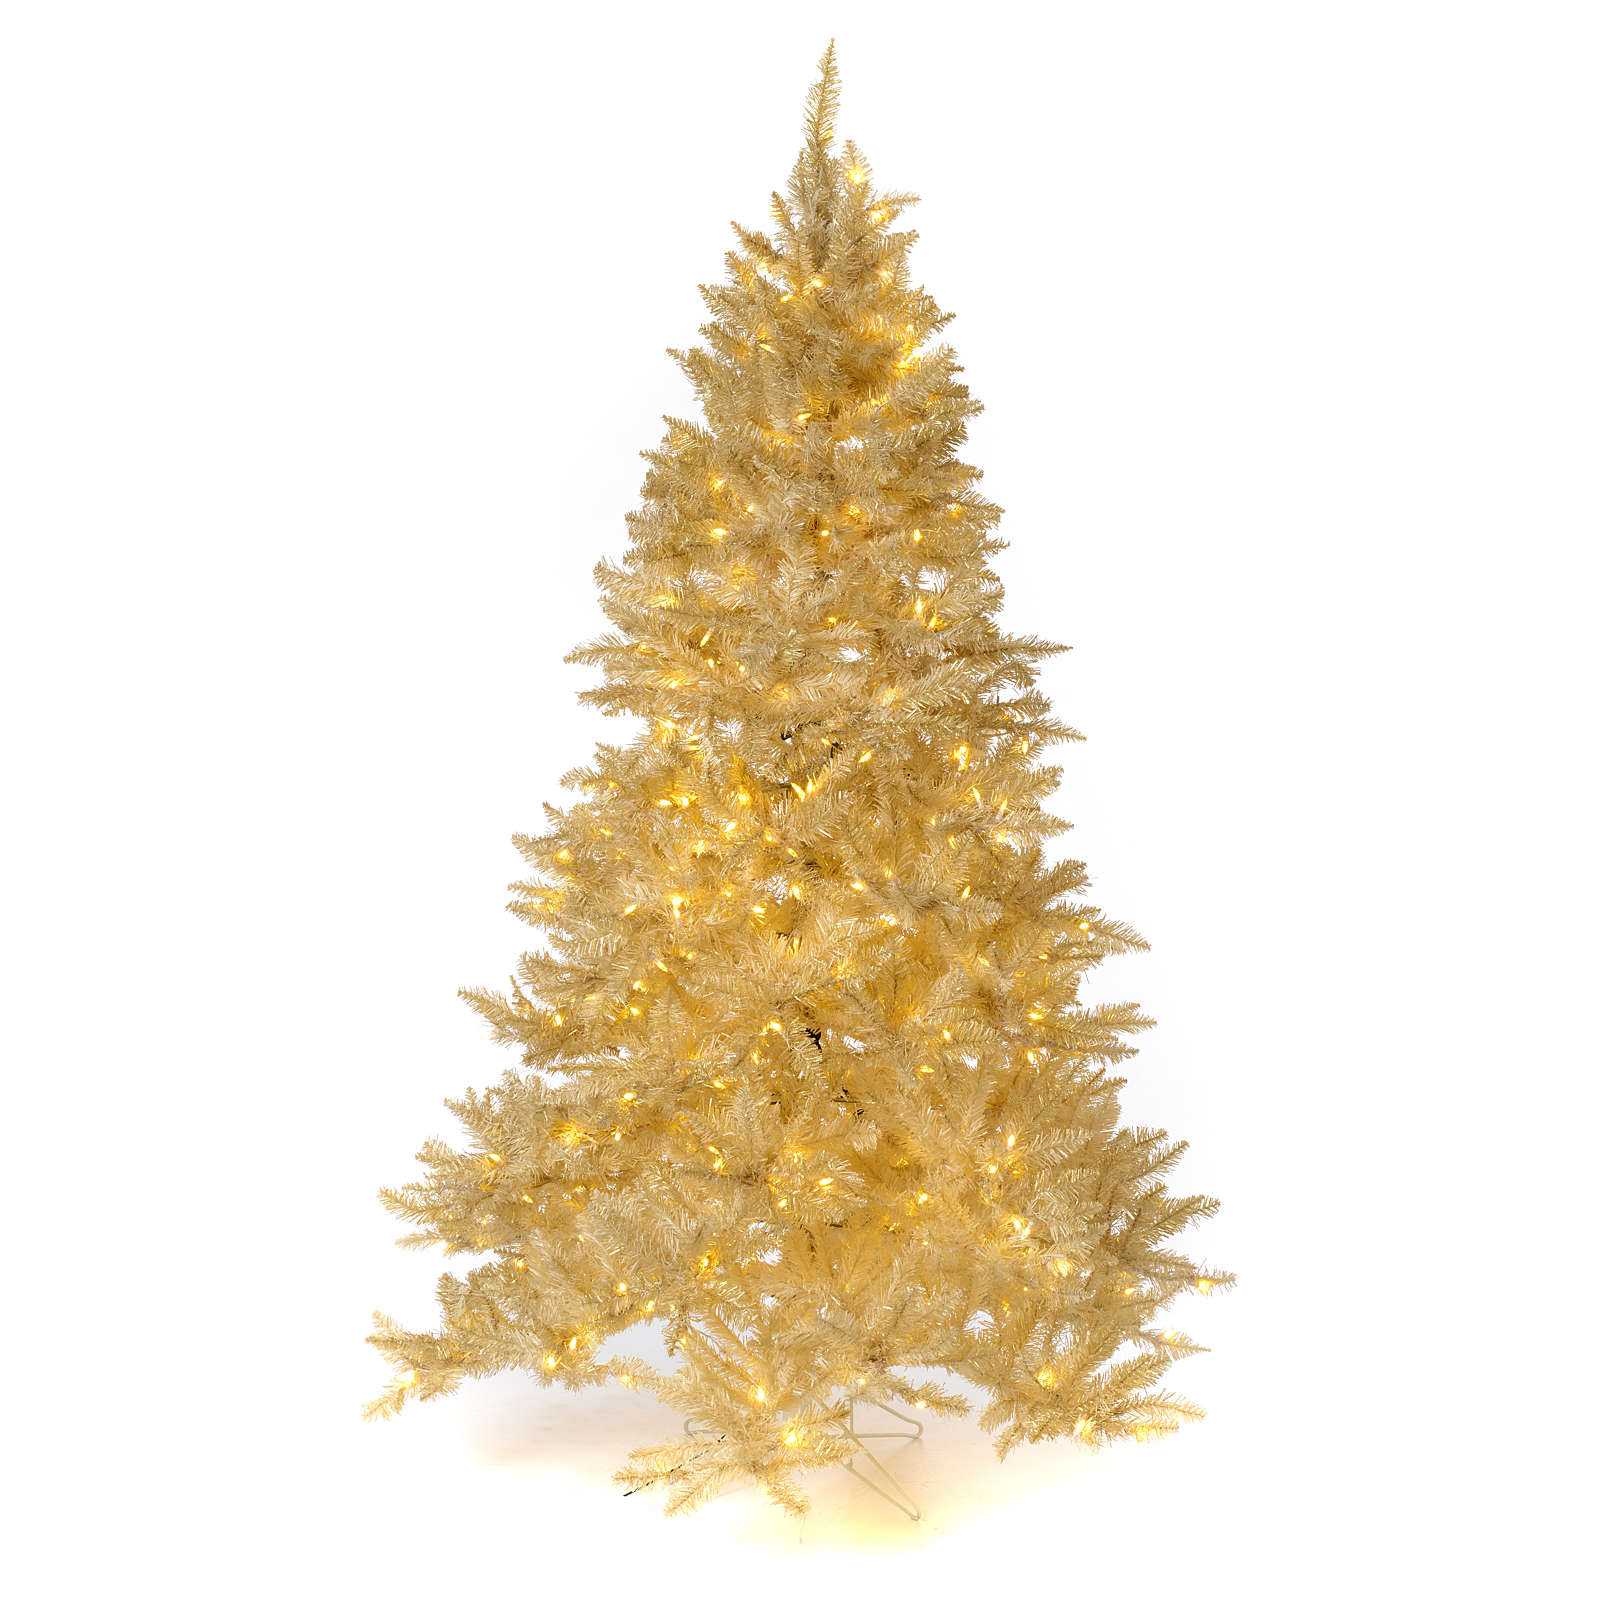 Christmas Tree 200 cm Ivory 400 LED Lights with Gold Glitter Regal Ivory 3